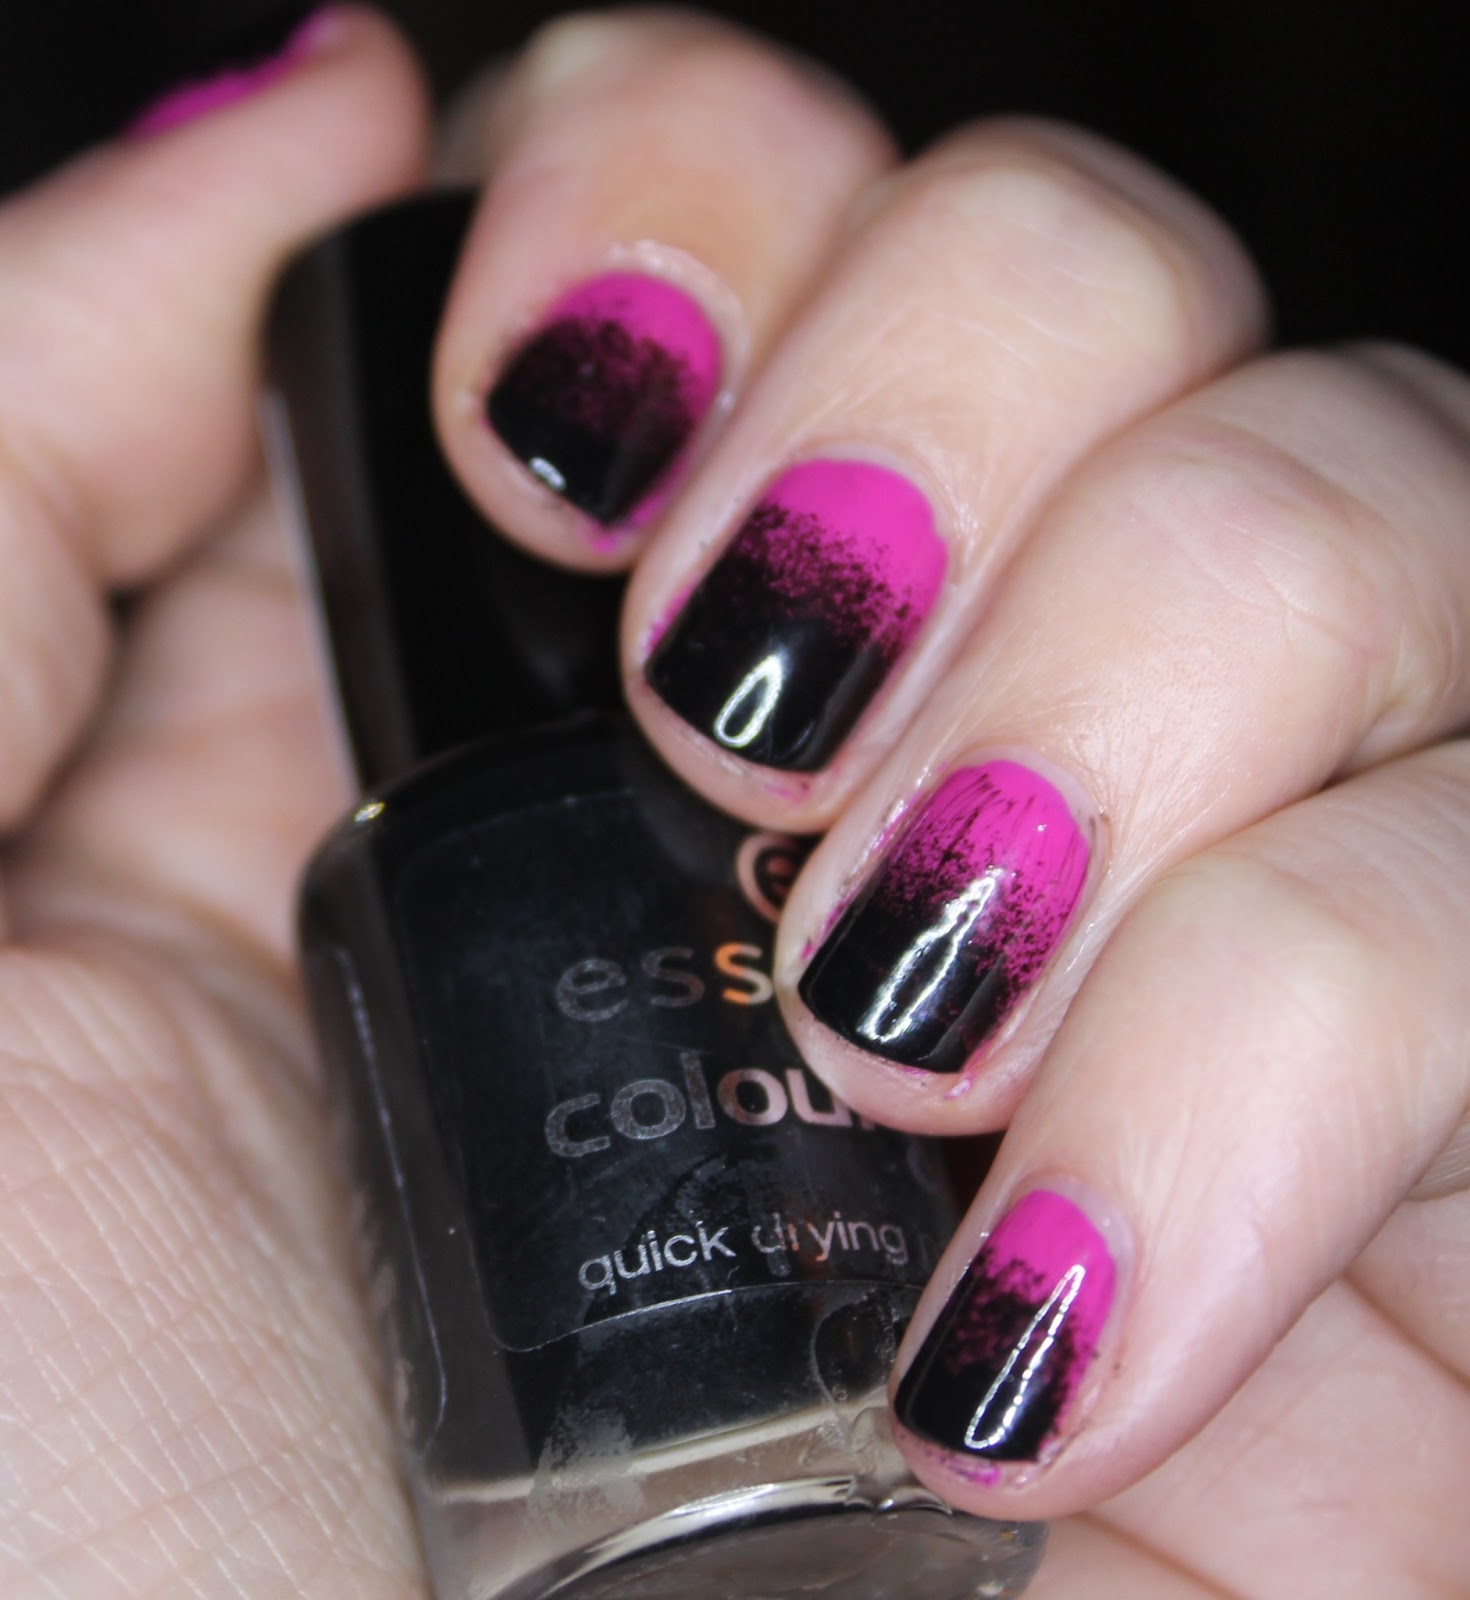 The sleepy jellyfish nail art 2 pink and black gradient nails